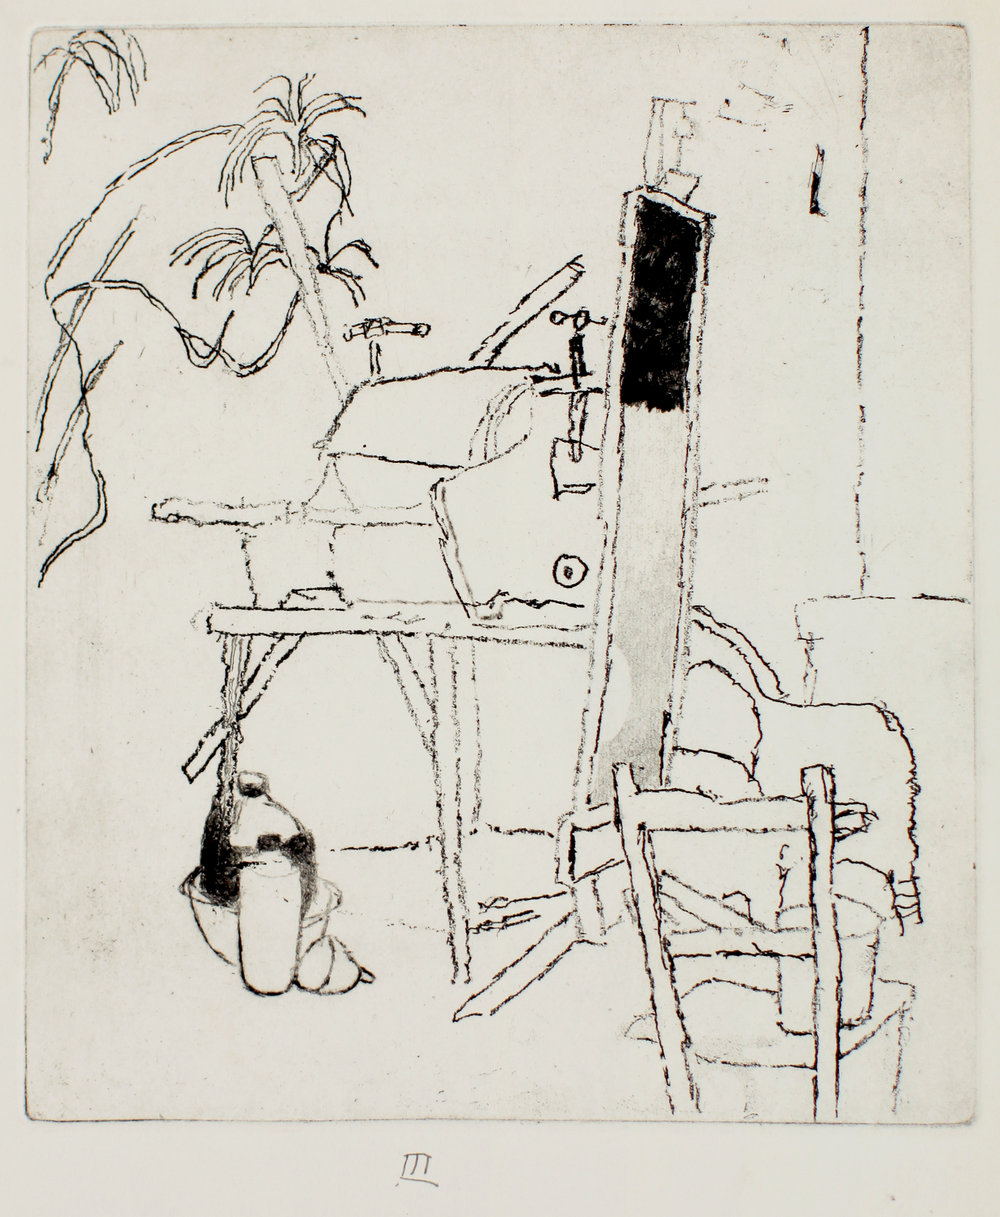 Studio with Etching Press